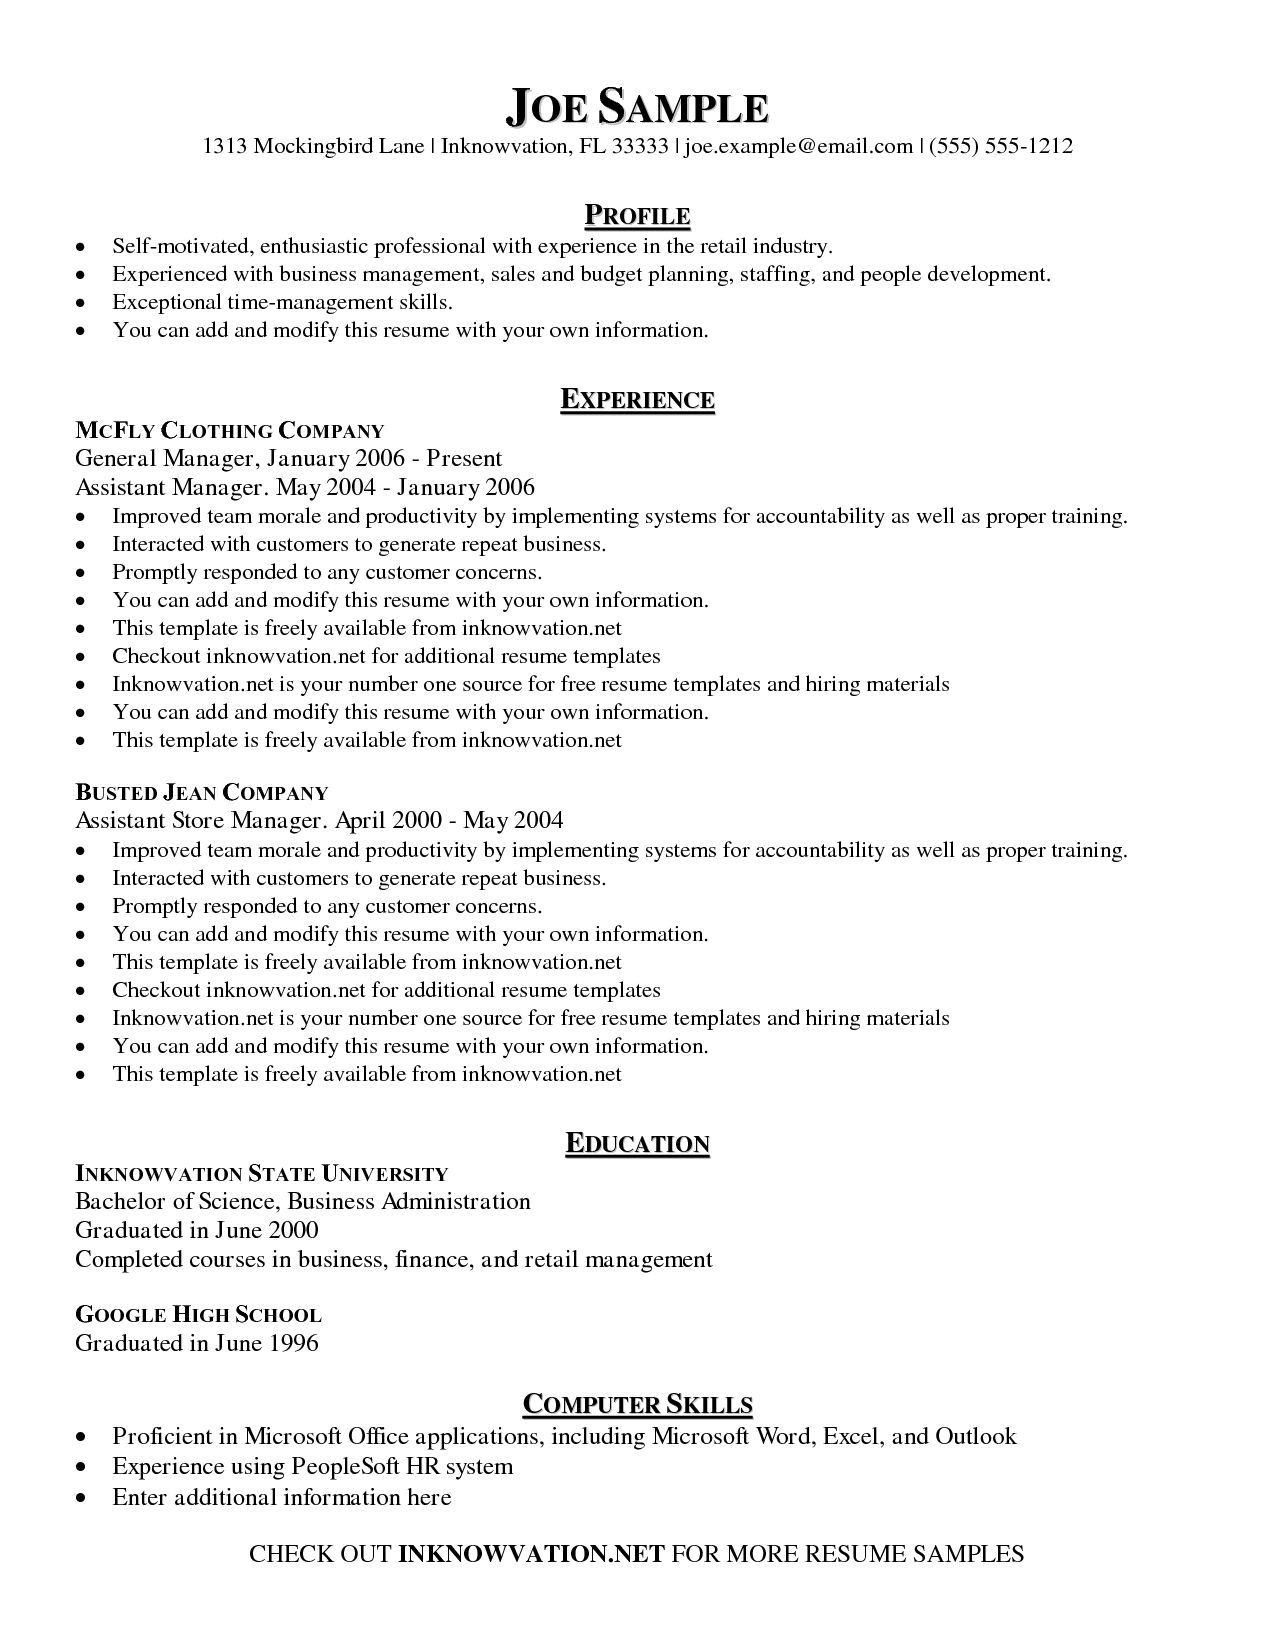 resume format checker templates cover letter for sample template examples professional Resume Professional Resume Checker